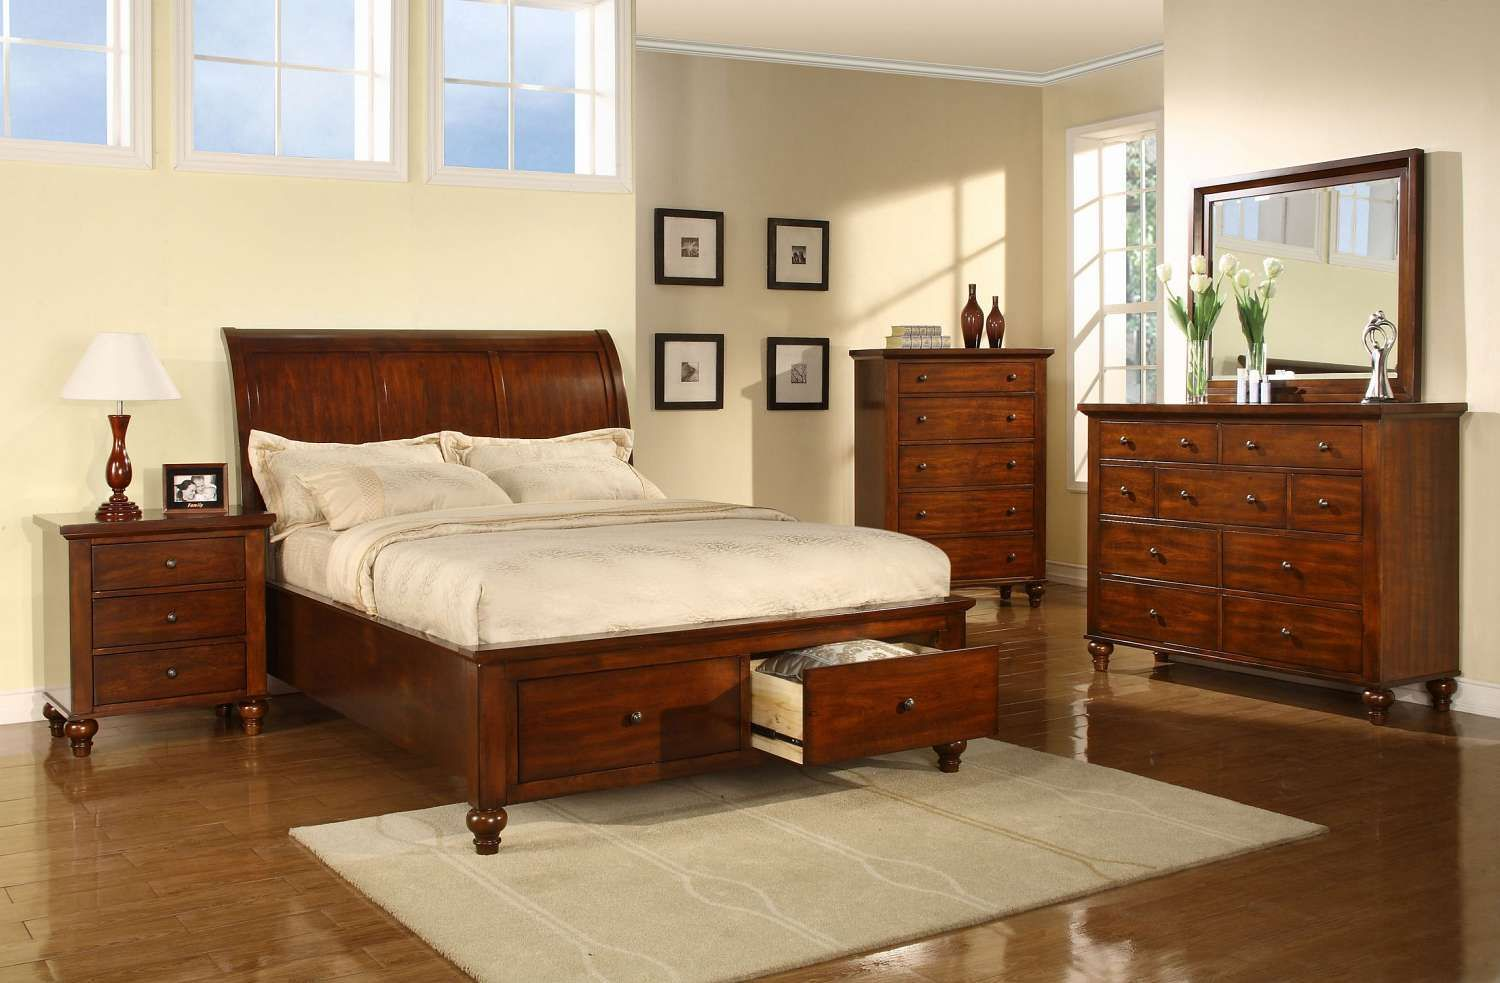 All Wood Bedroom Set   FFO Home This Set Includes A Queen Headboard,  Footboard,